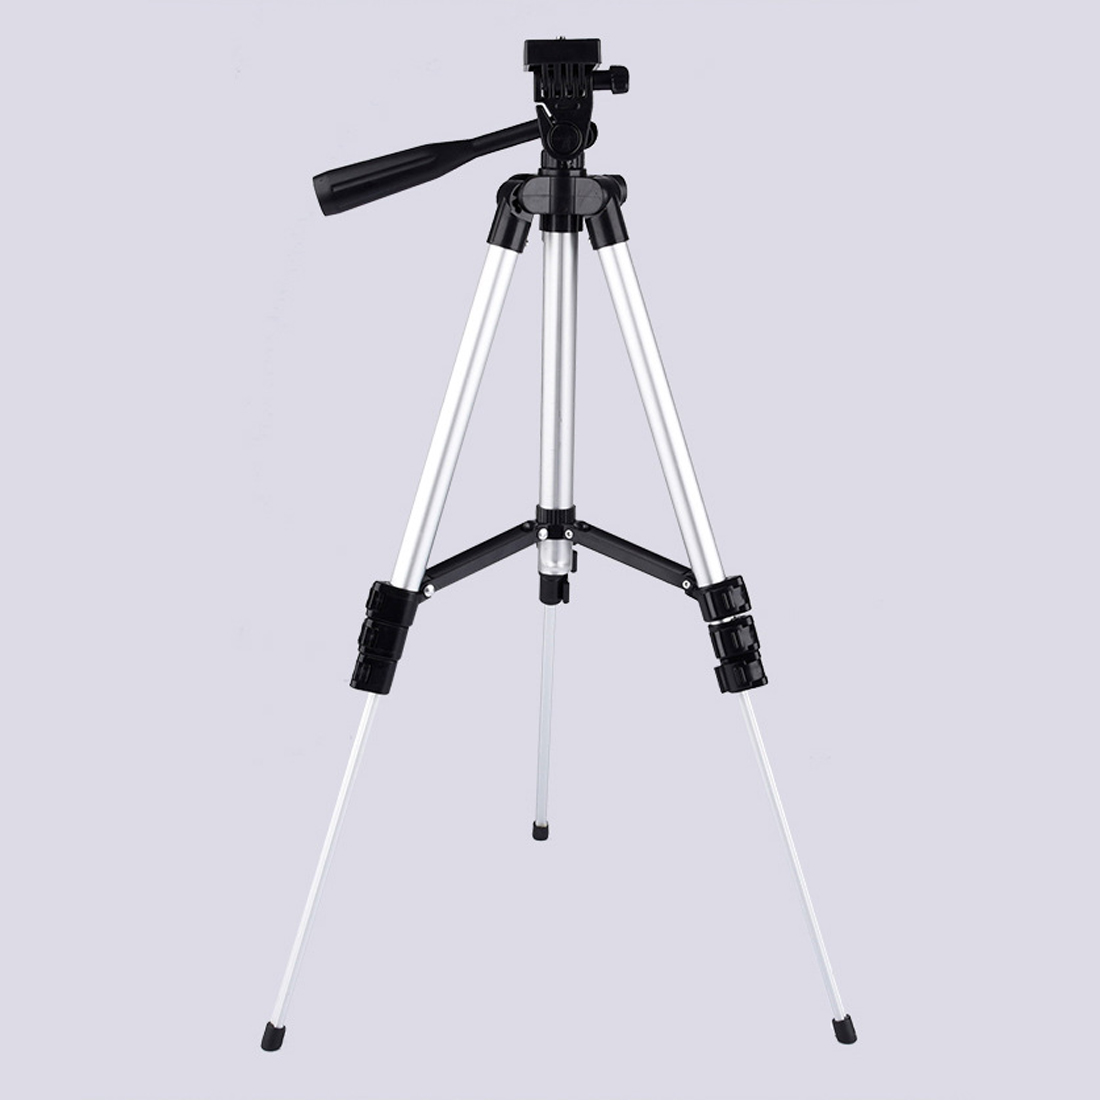 HONGDAK Brand New Professional High Quality Durable Camera Tripod Stand Holder Four Aluminum Tube Portable Tripod Carry Bag shockproof dustproof camera tripod carry bag